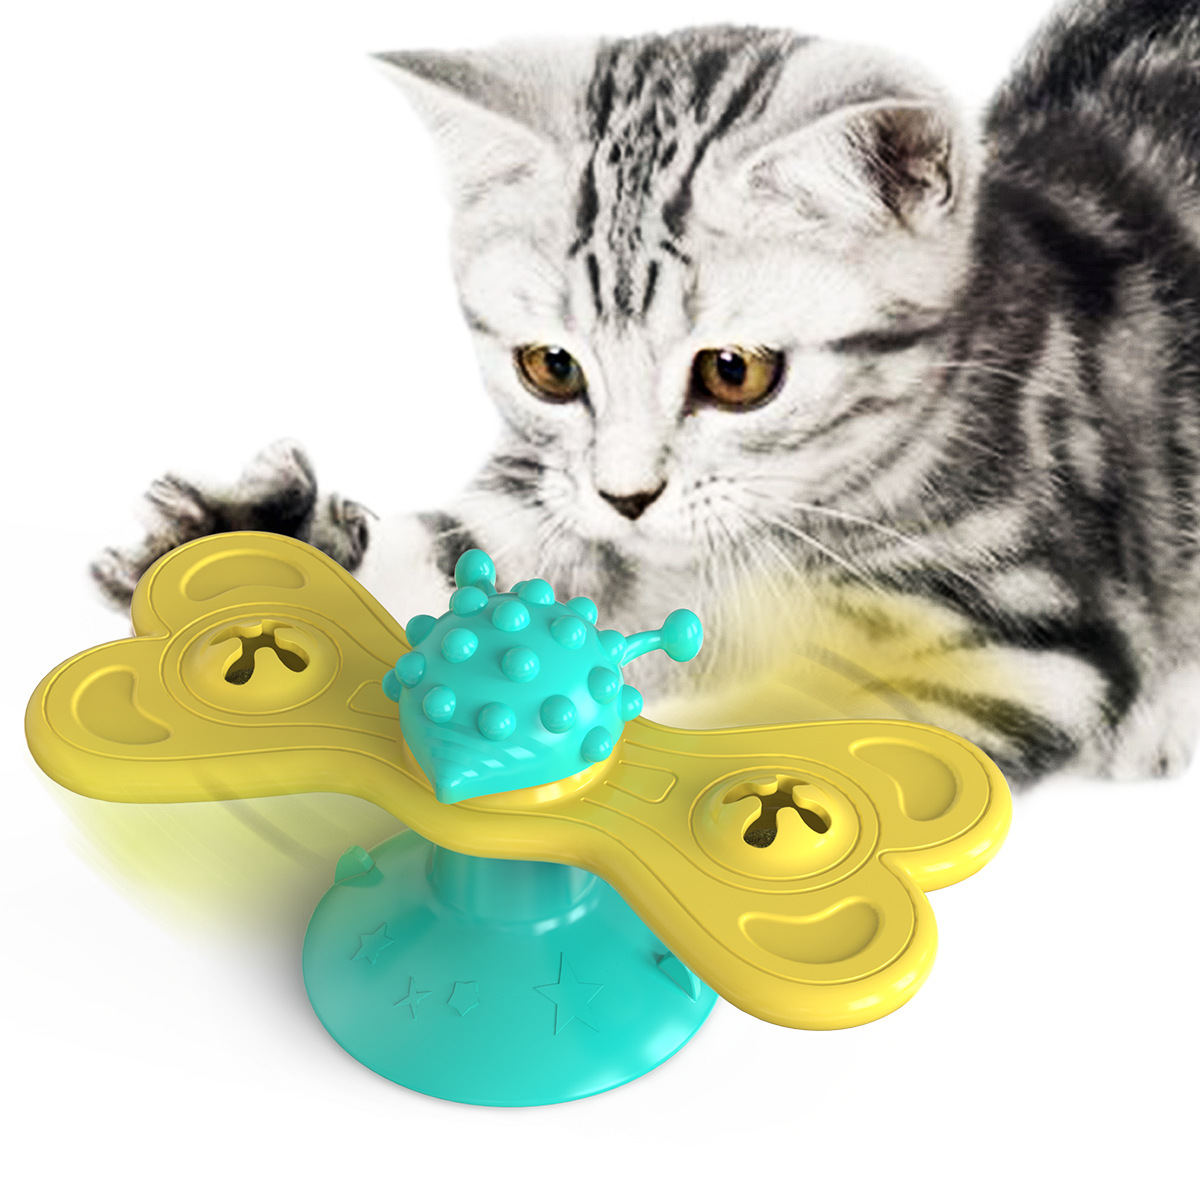 Entertaining Turntable Hair Rubbing Toys for Pets Boredom Reliever